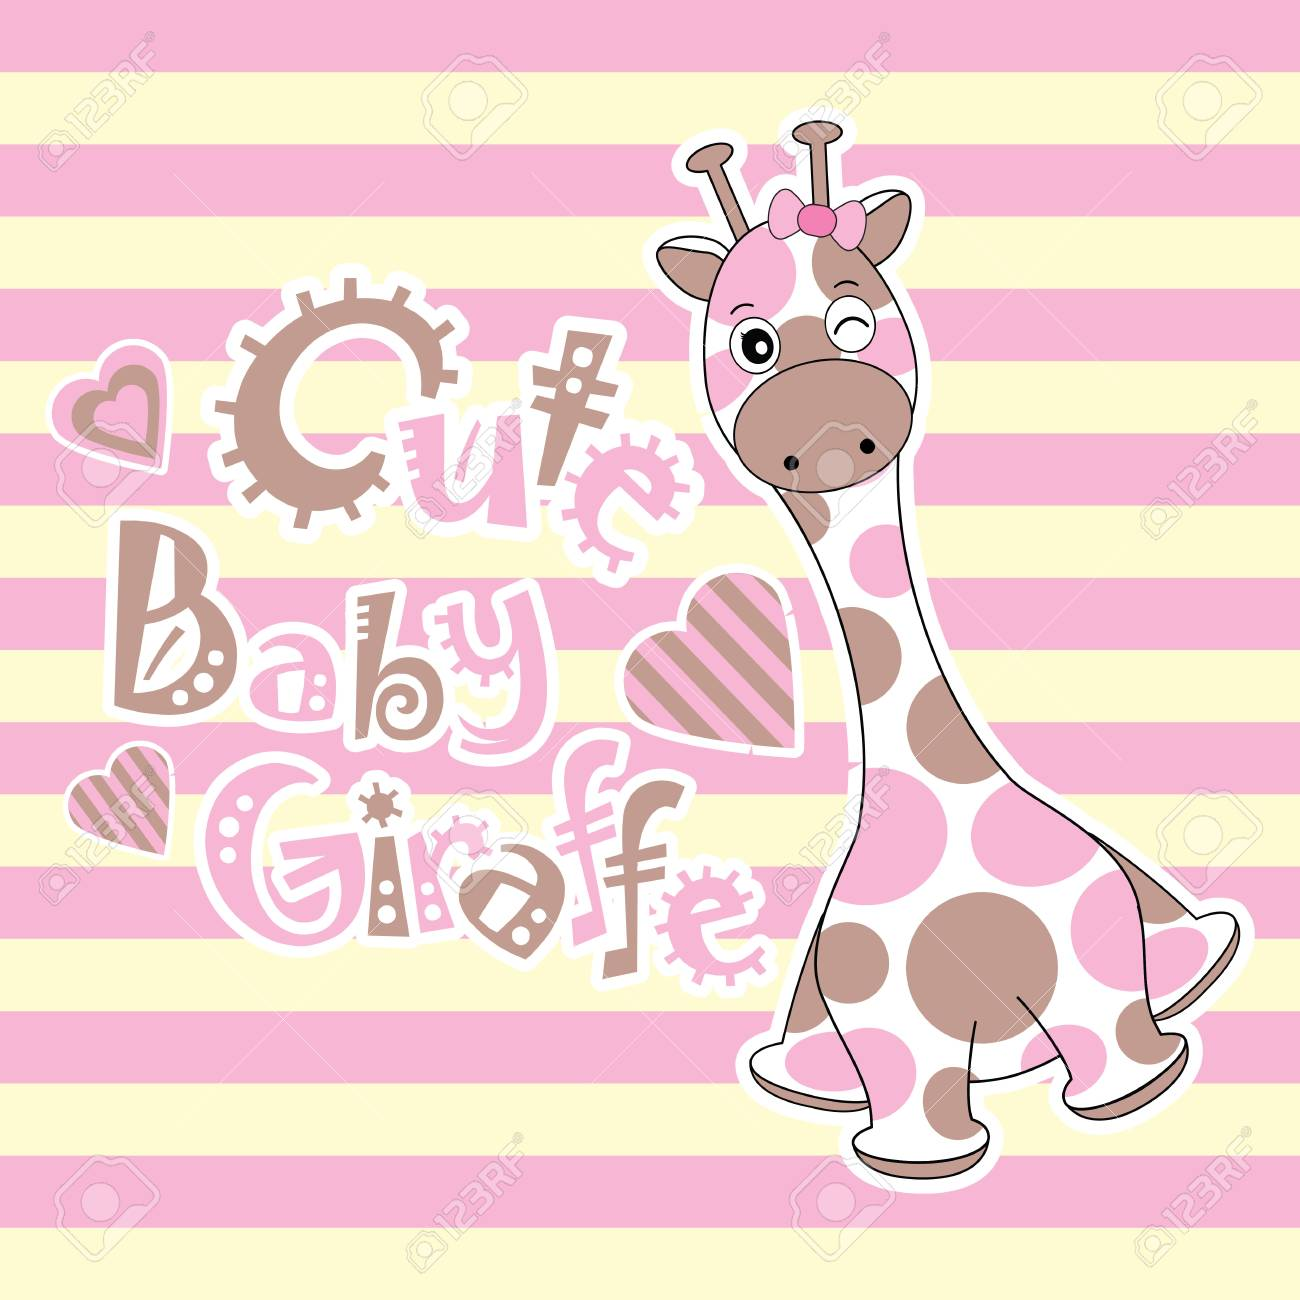 Baby Shower Card With Cute Baby Giraffe On Stripes Background